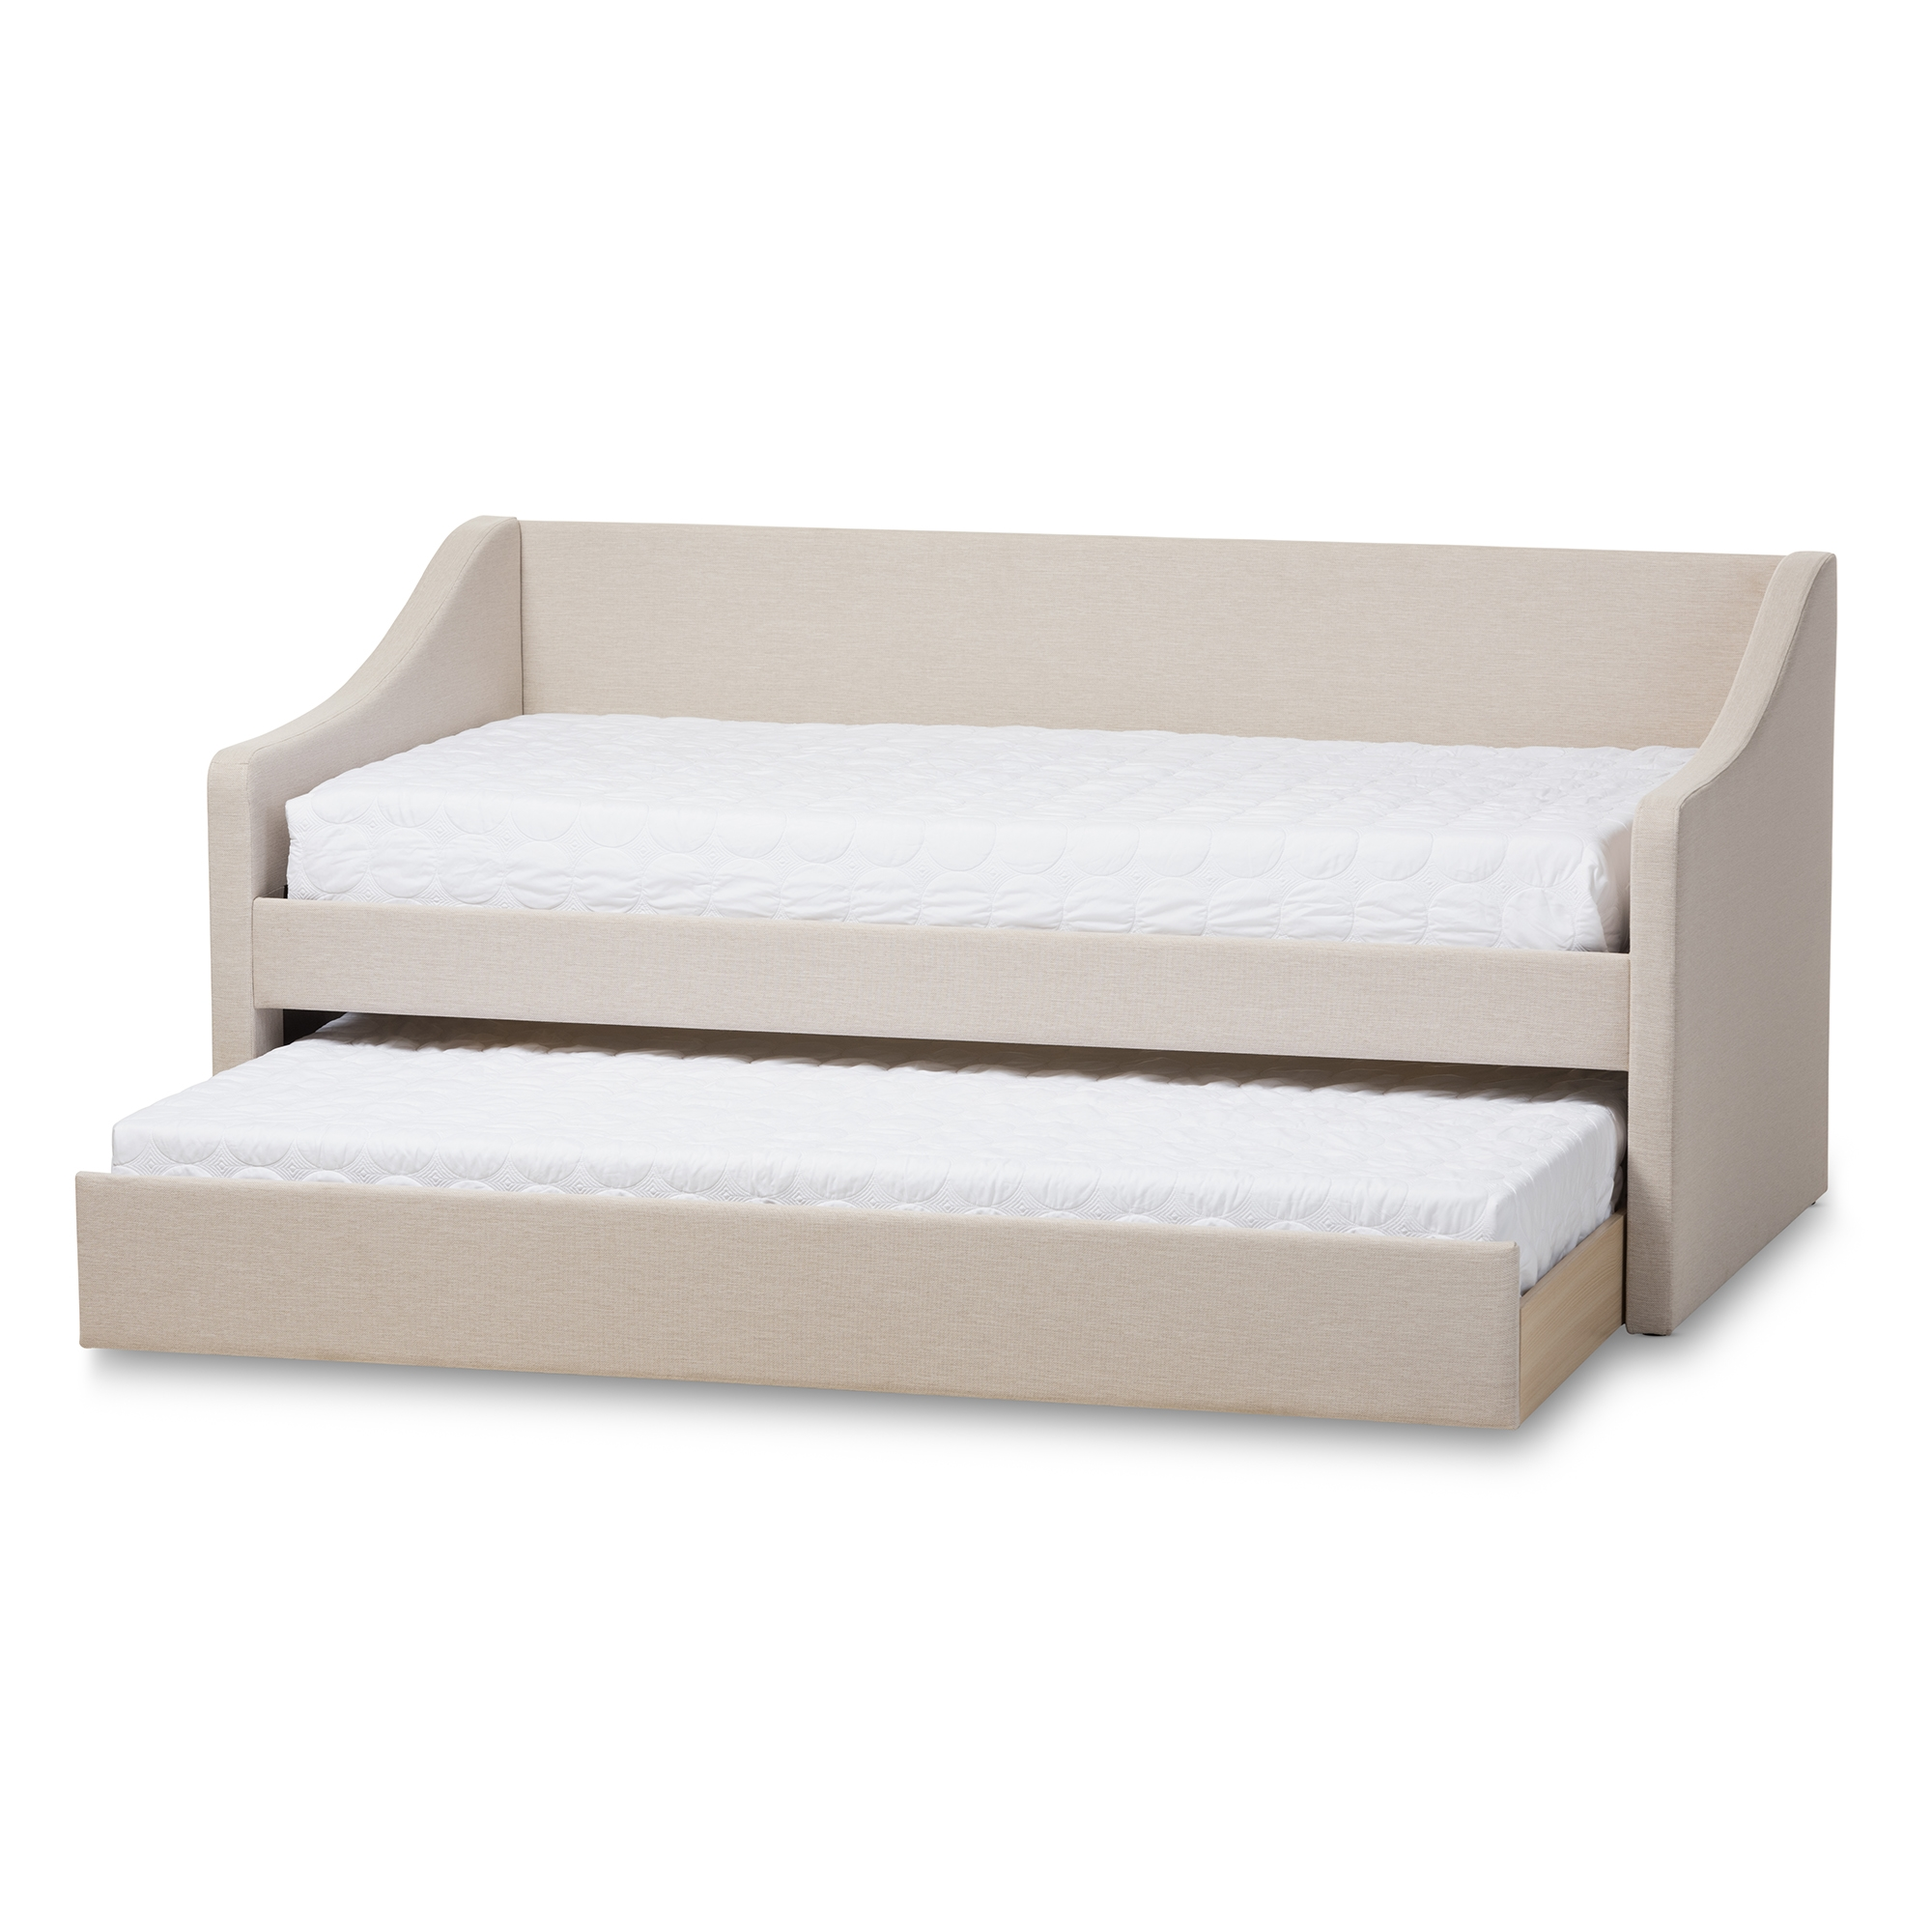 Trundle Bed Couch Roberta Day Bed With Trundle Bed Dhp The Tokyo Metal Frame Daybed And